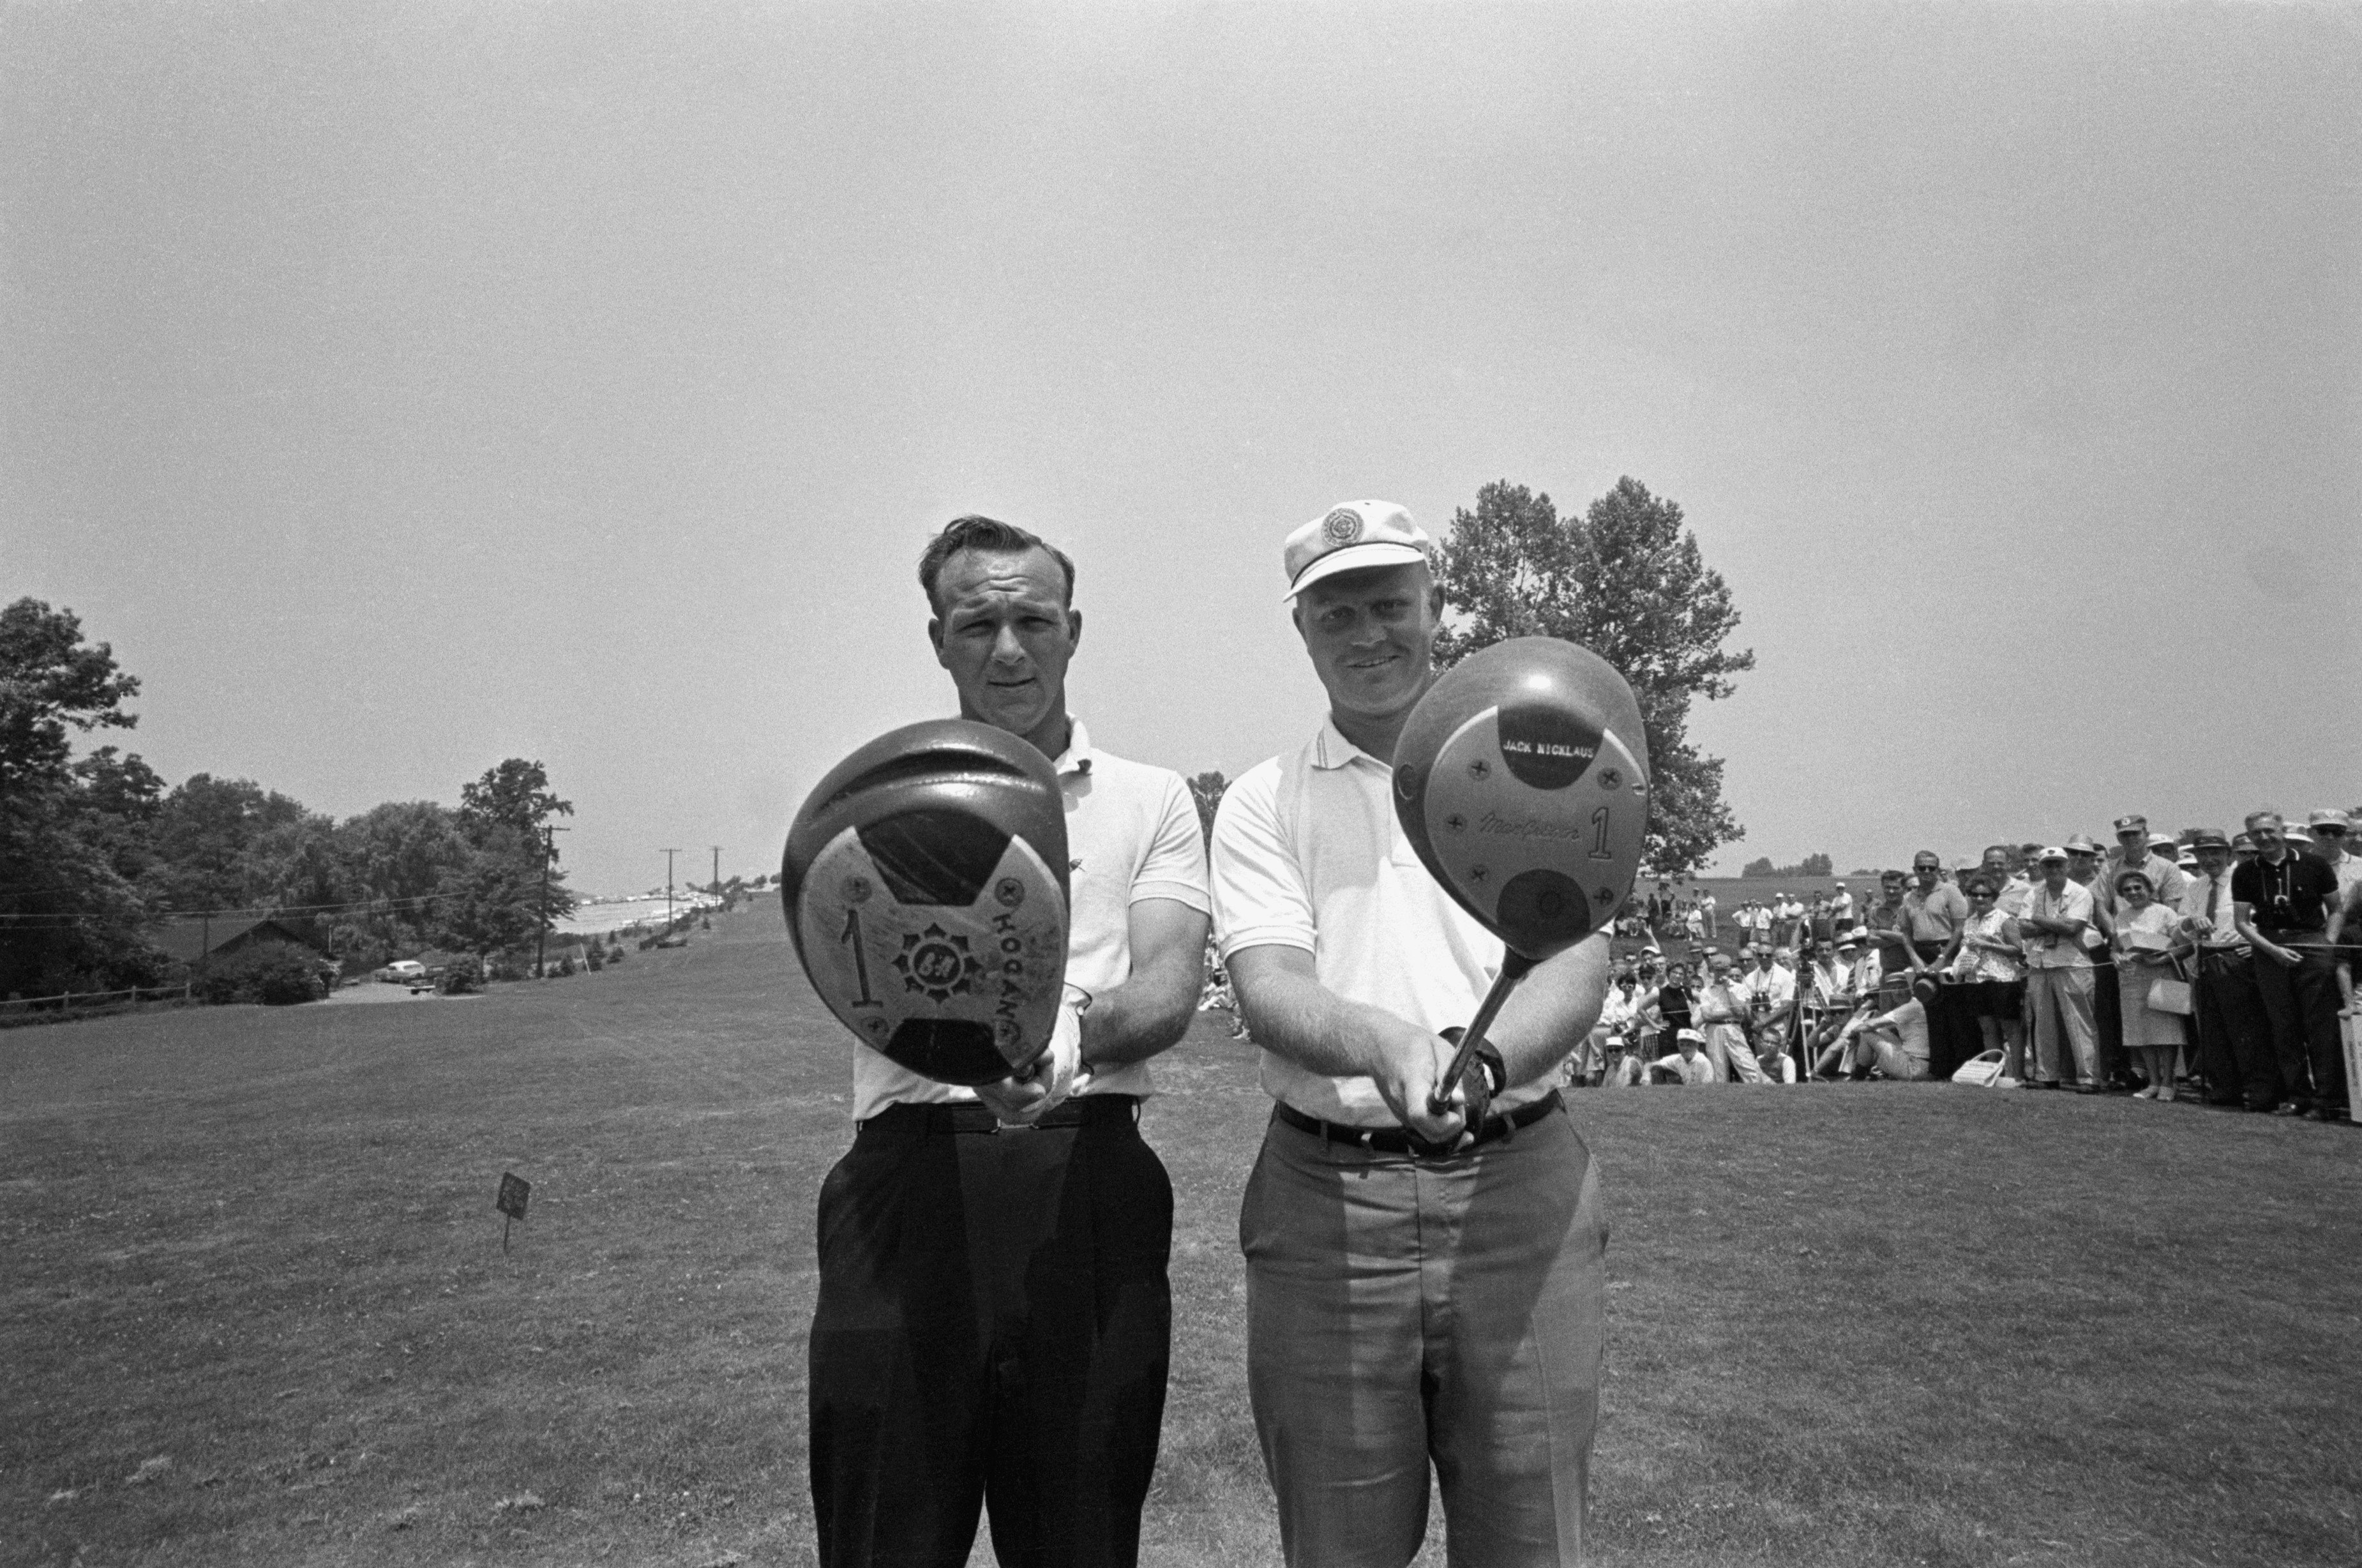 Arnold Palmer and Jack Nicklaus check their drivers before teeing off for a tie breaking playoff in the 1962 US Open.